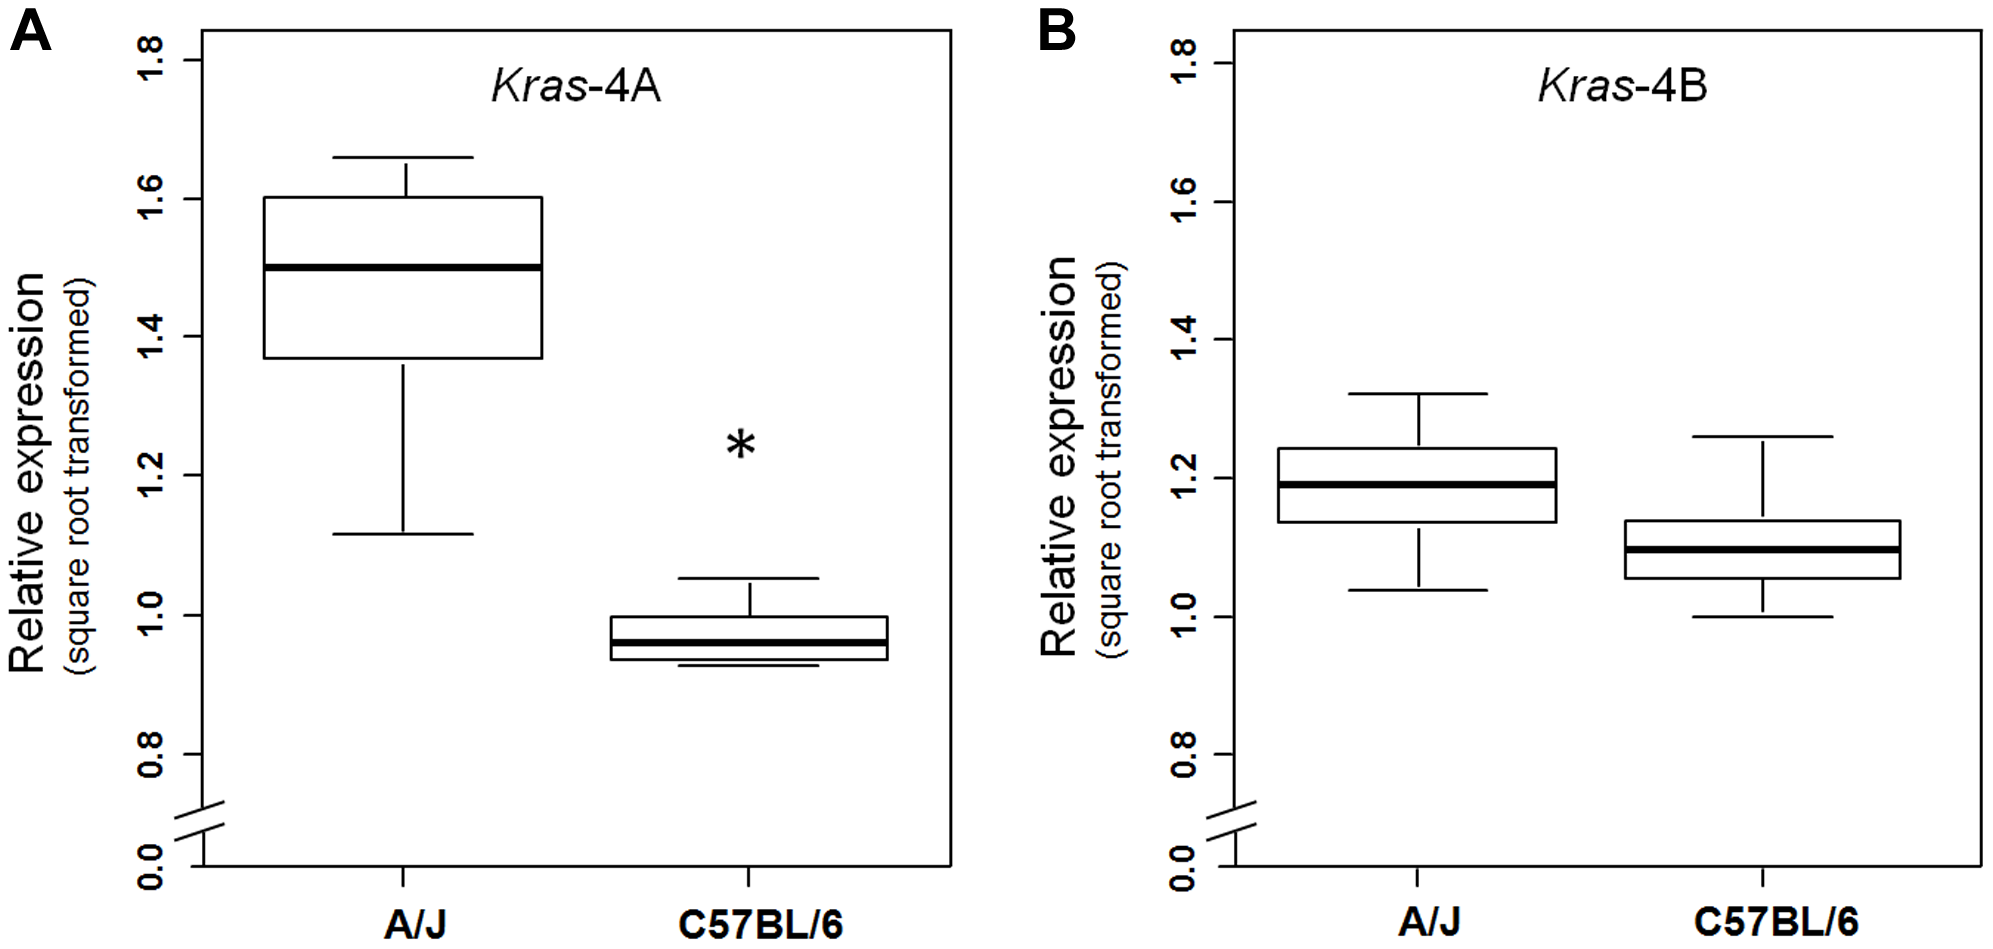 <i>Kras</i>-4A is expressed at higher levels in susceptible (A/J) than resistant (C57BL/6) strains.